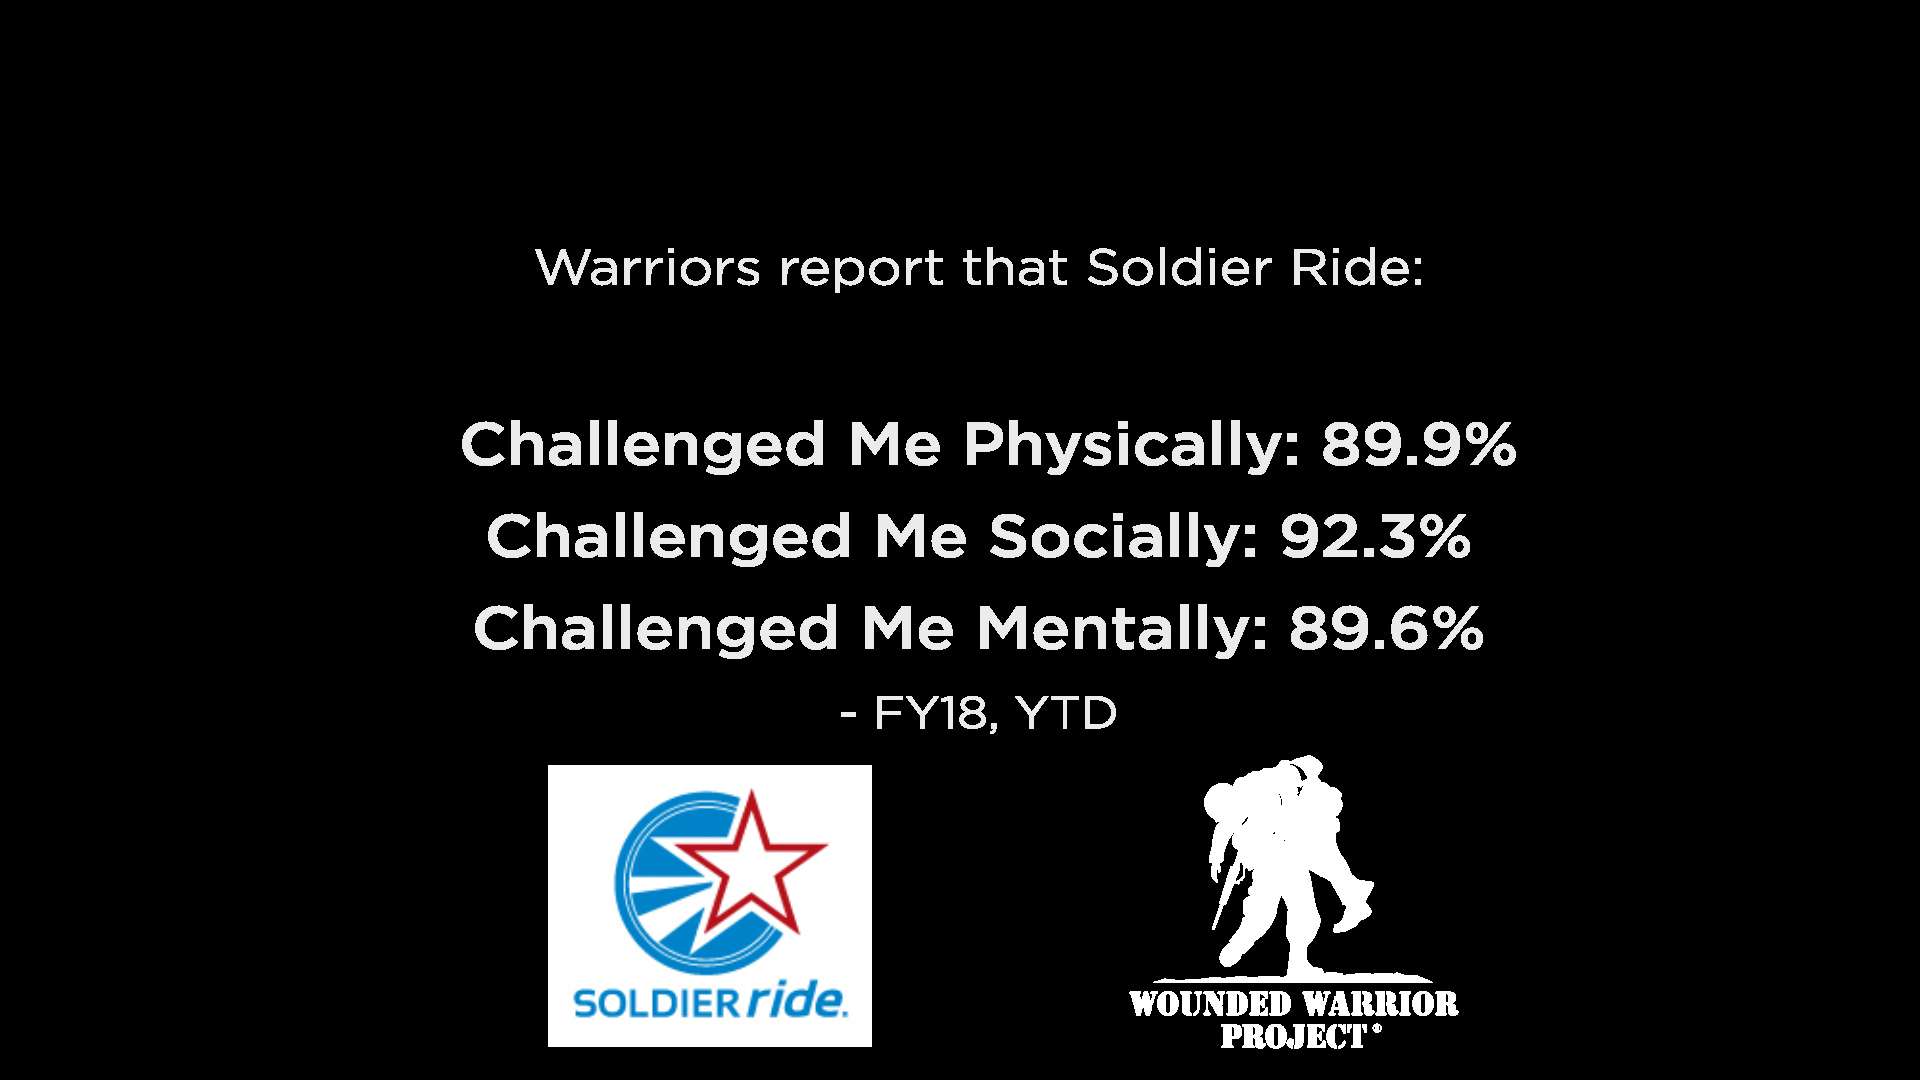 Warrior Personal Challenge Stats – Report on the success of personal challenges set by warriors during Soldier Rides.